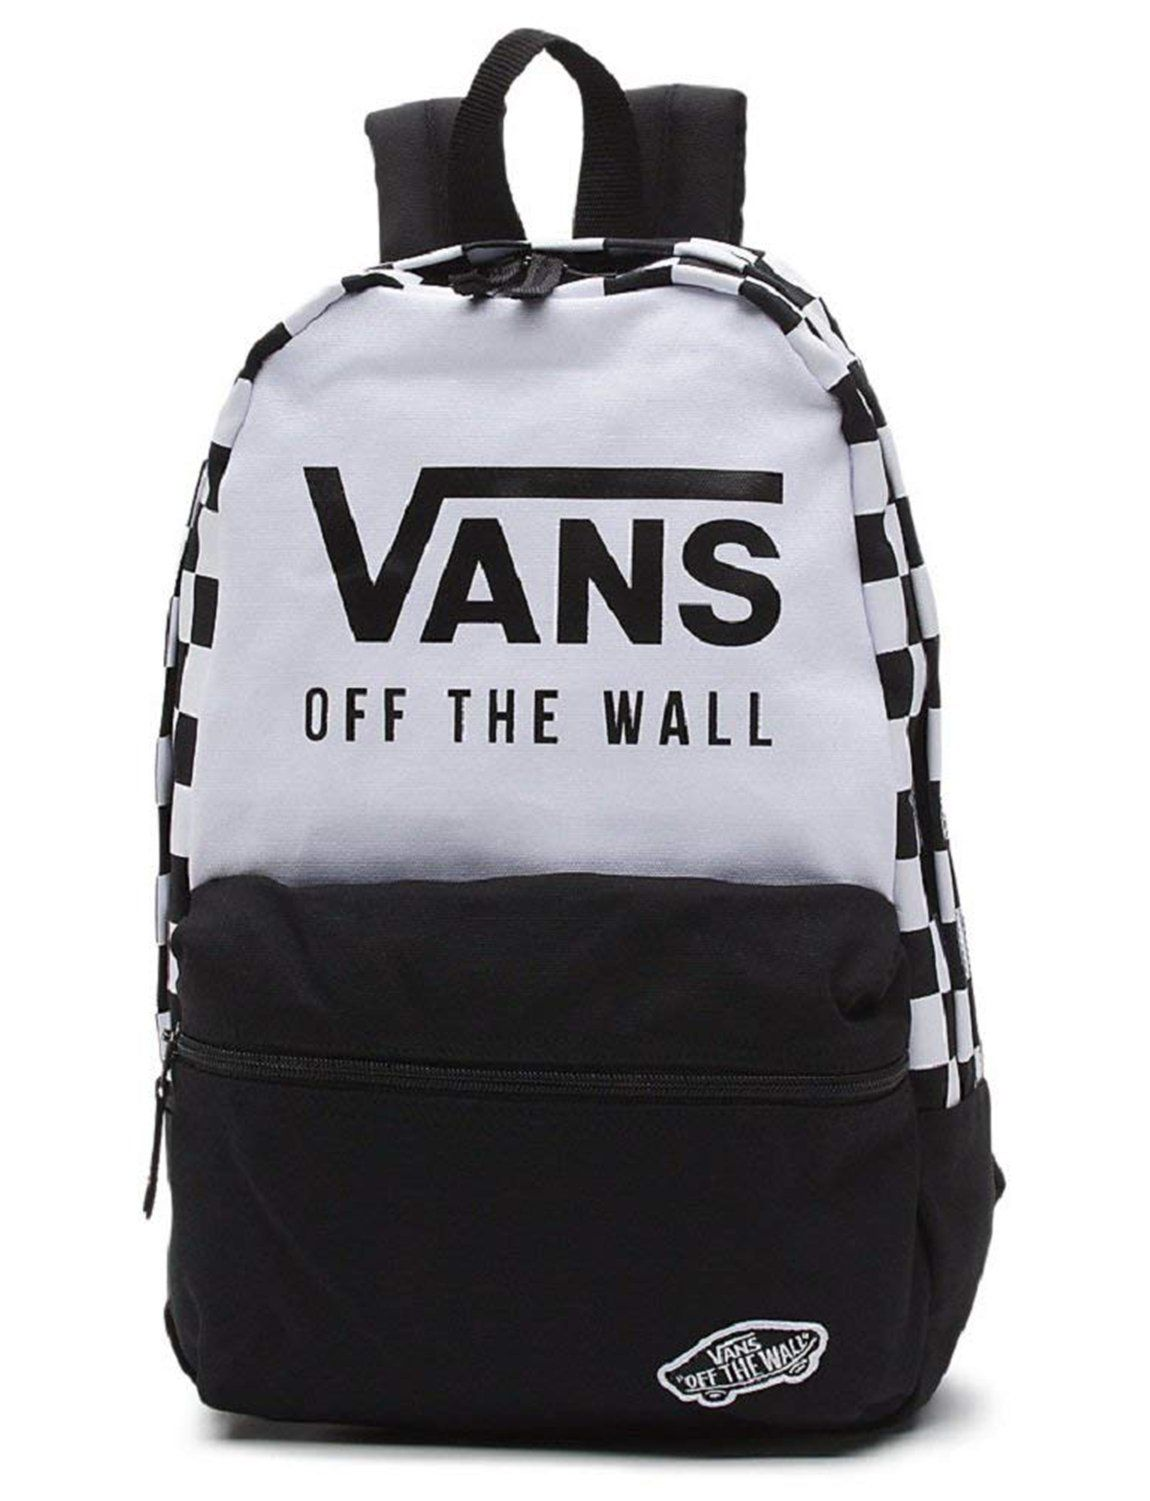 Off Wall 2019Cosas Vans The En Me Calico Backpack School Que FlKJ1c